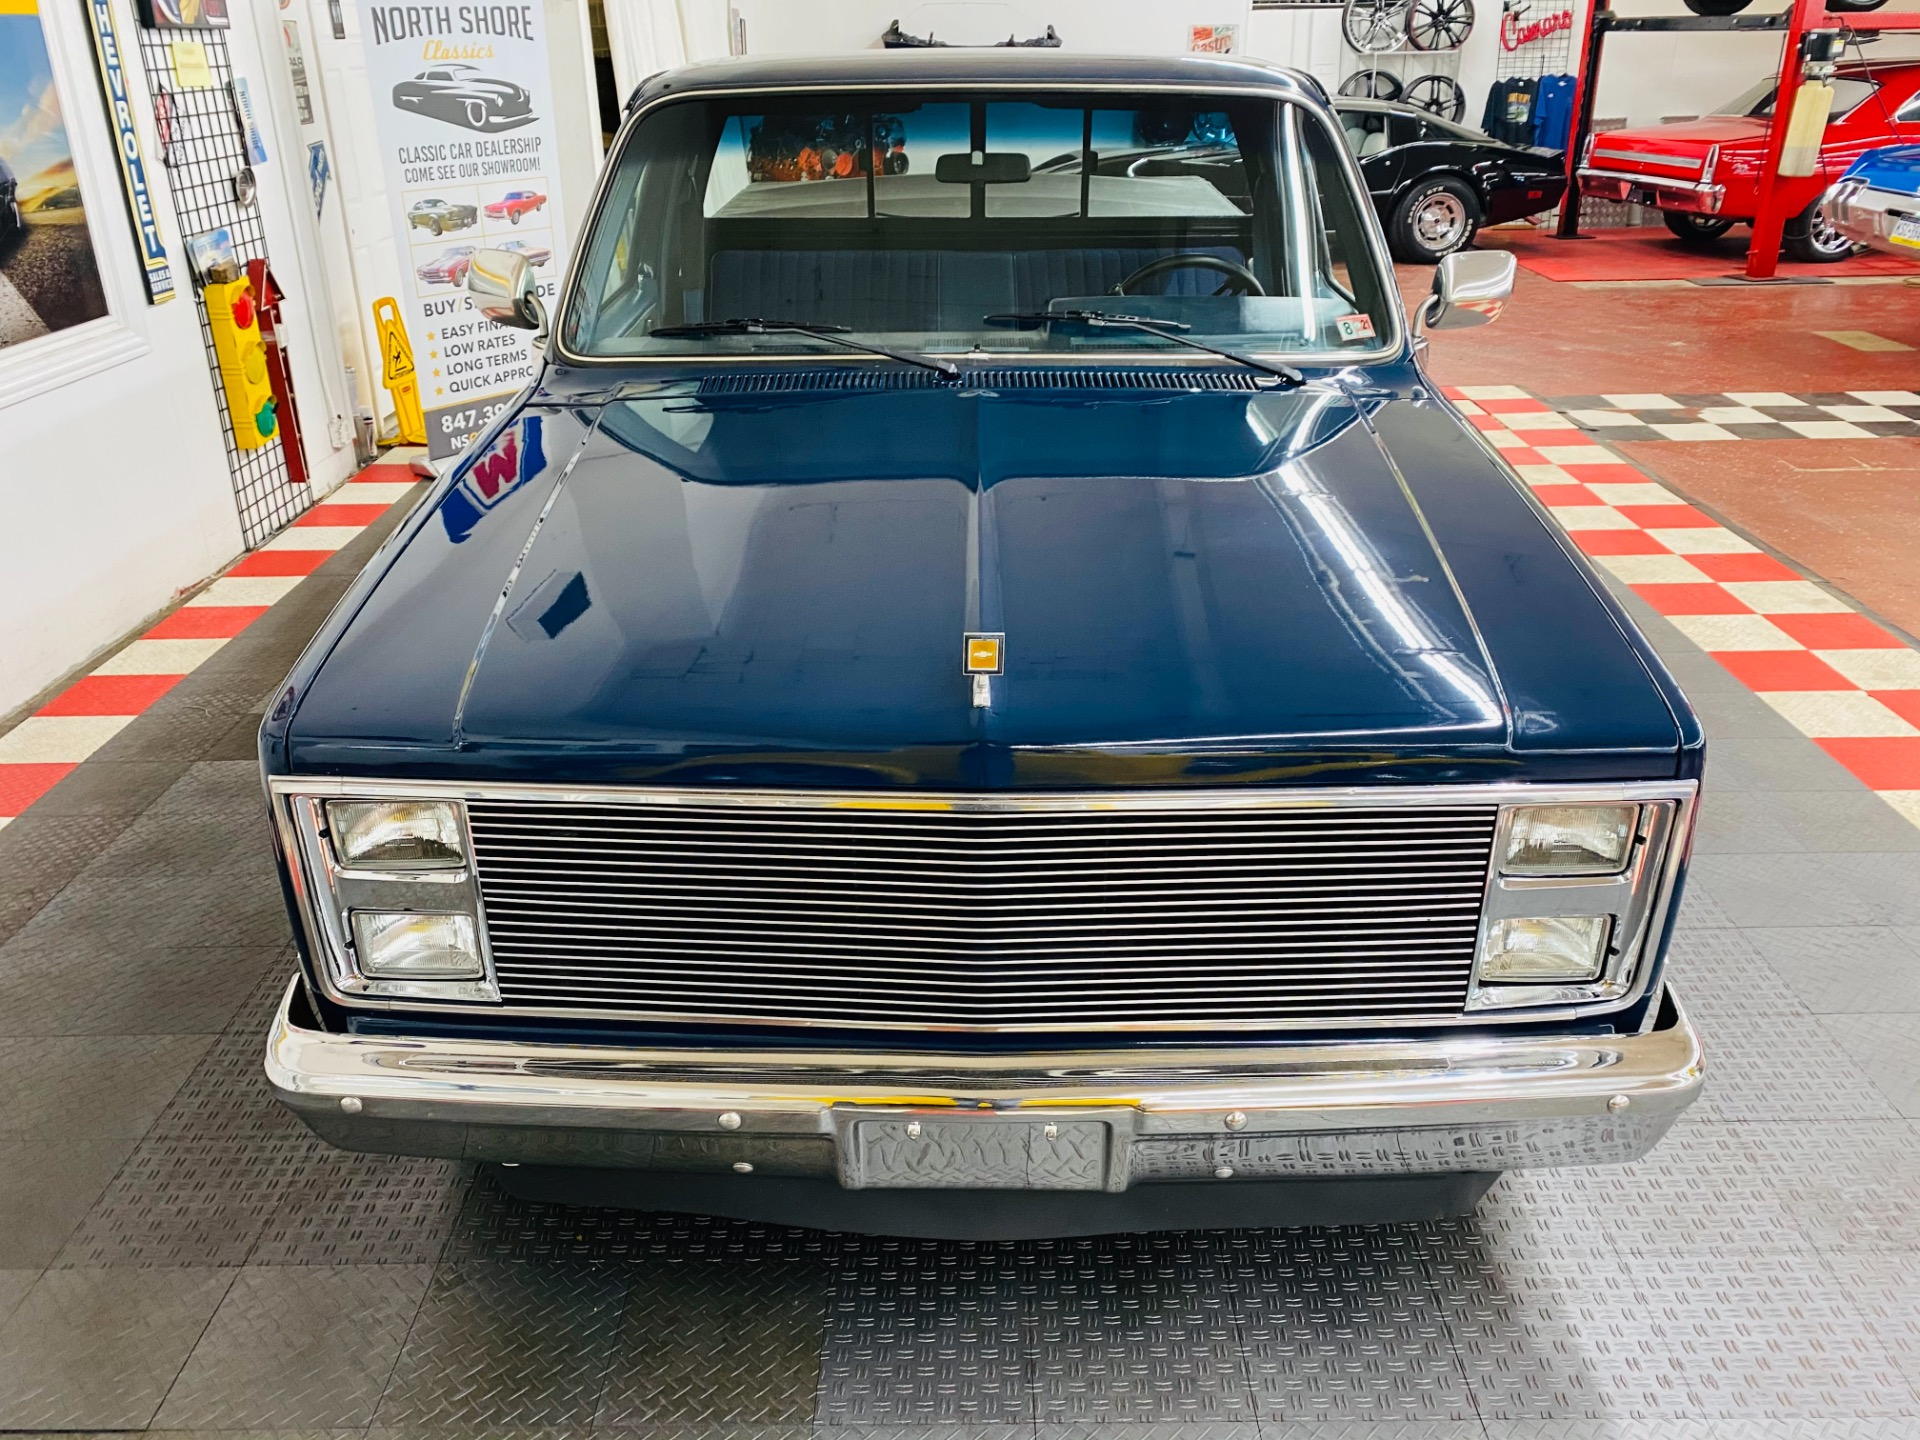 Used 1986 Chevrolet Pickup - C10 SILVERADO - VERY CLEAN SOUTHERN TRUCK - SEE VIDEO | Mundelein, IL